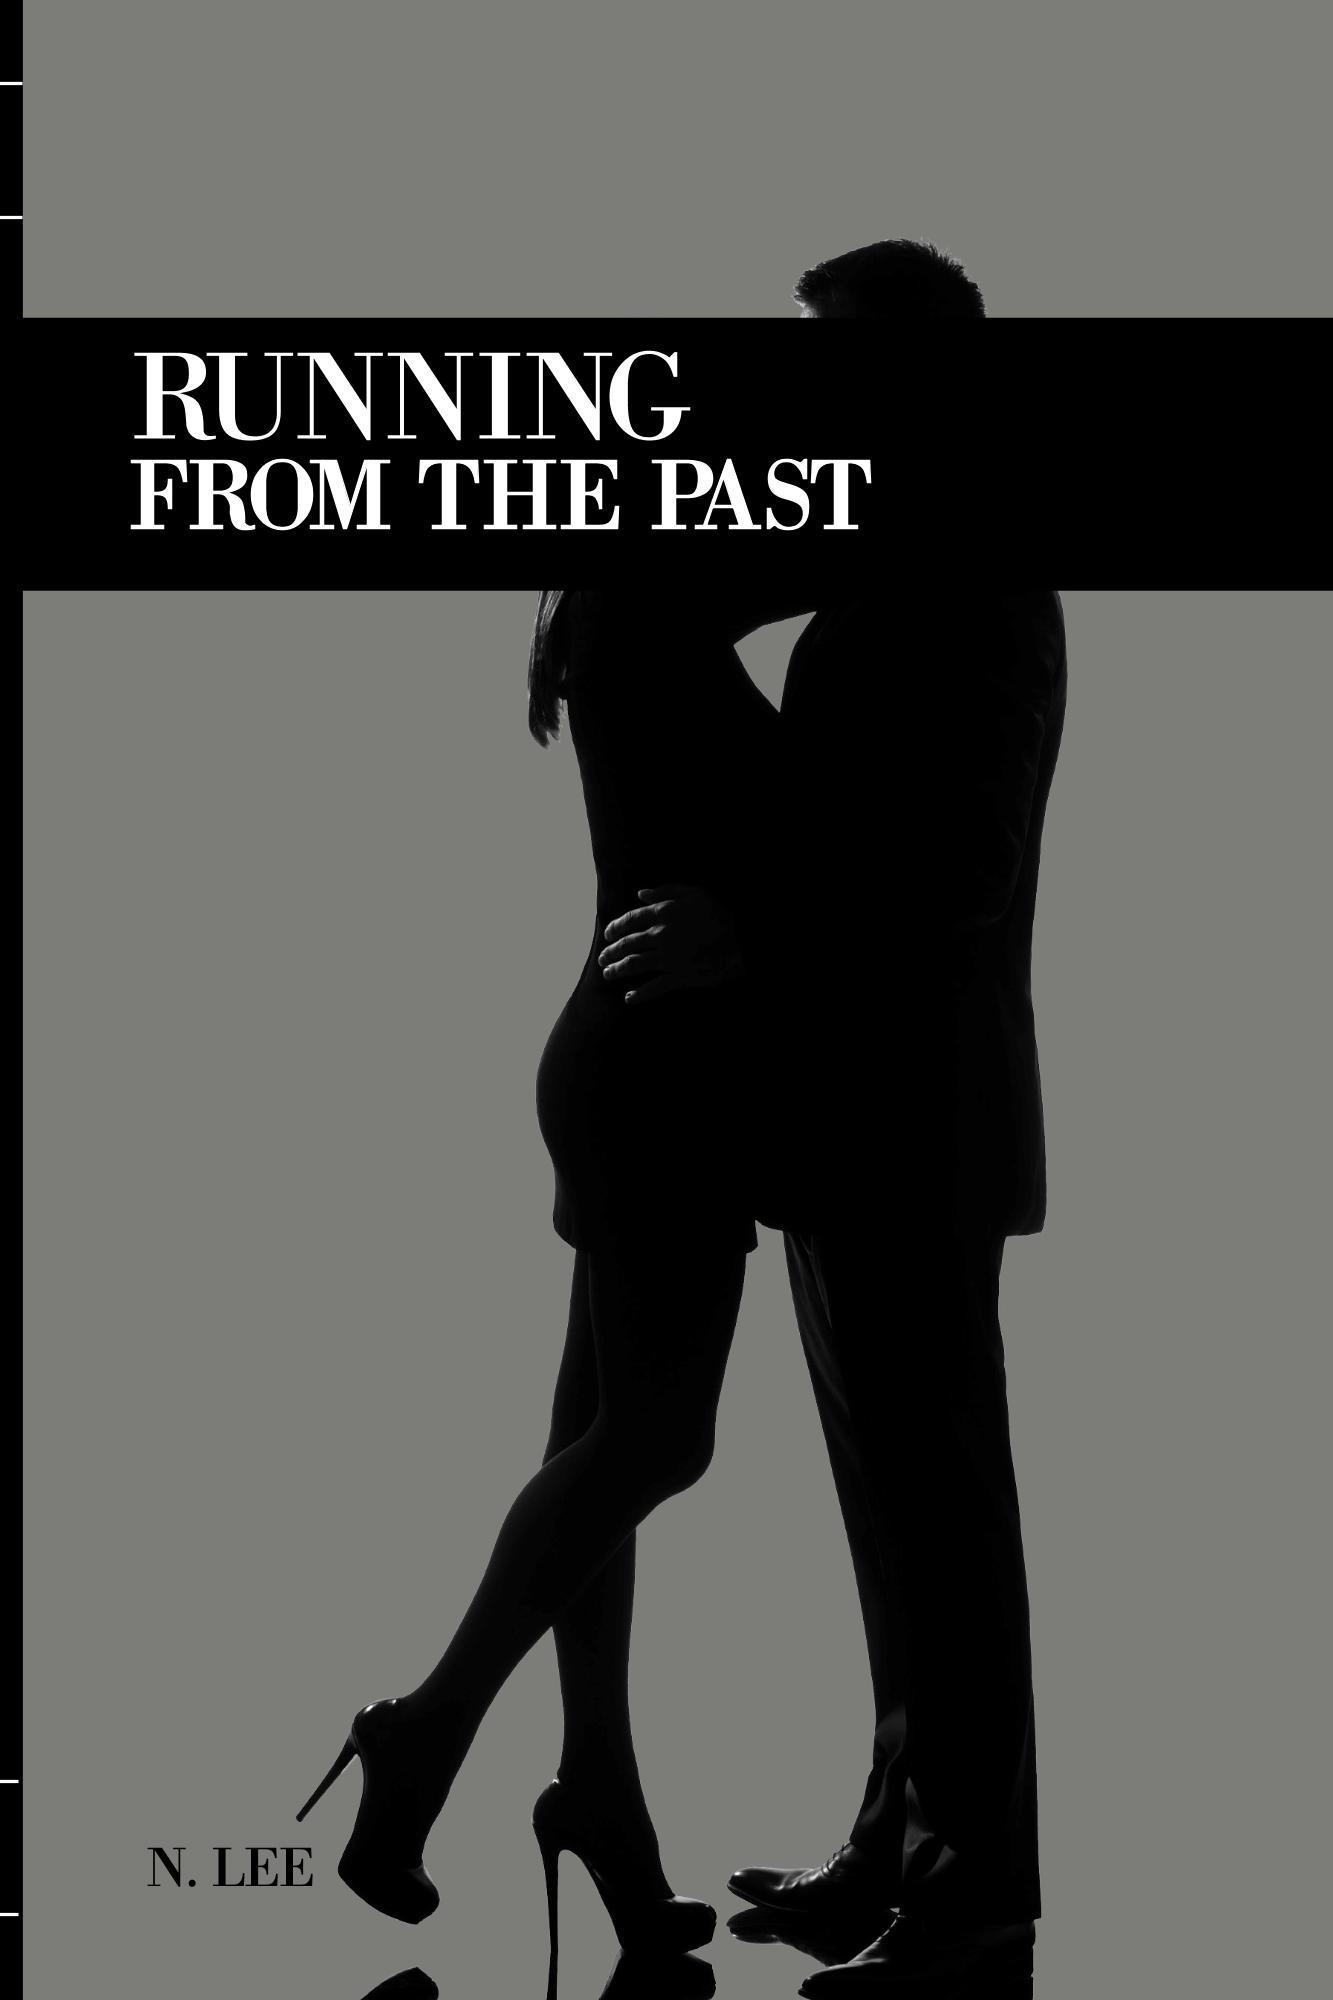 Running From the Past (The Running Series Book 1) by N. Lee